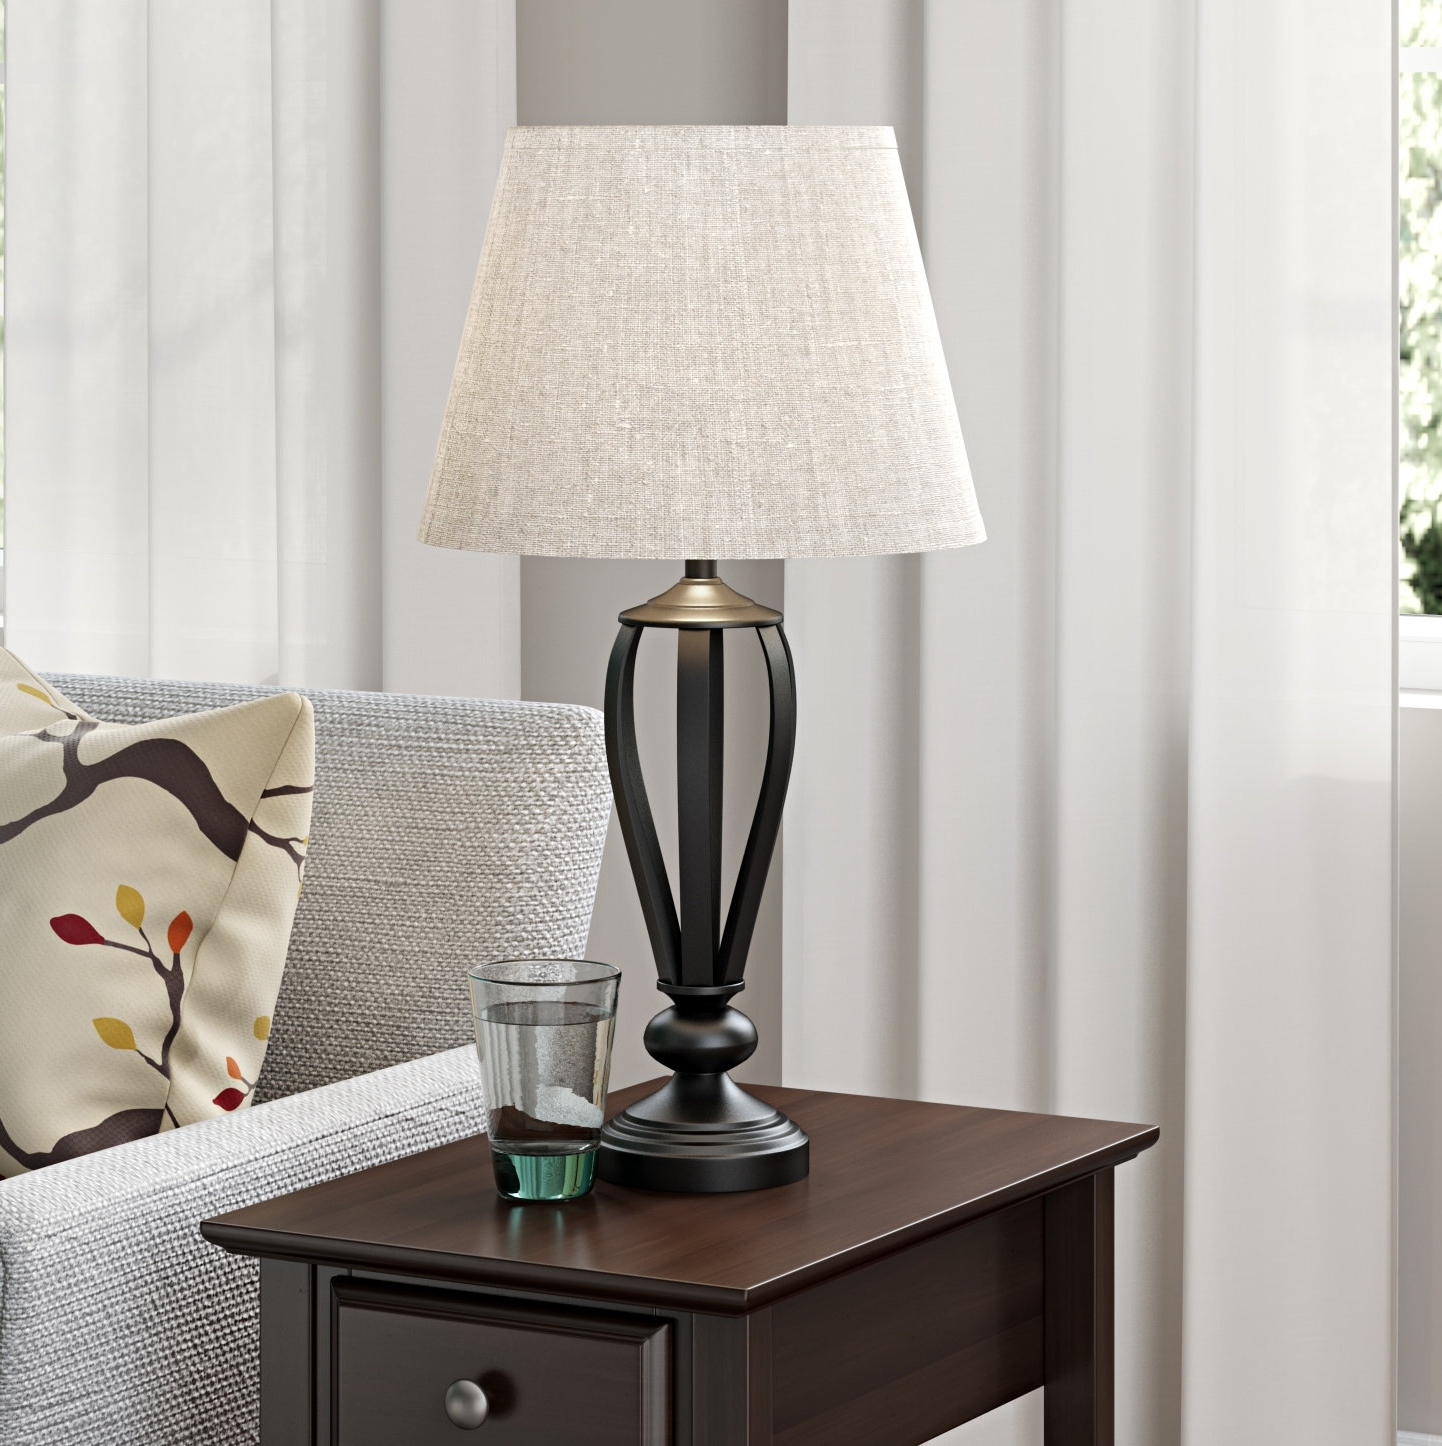 Fashionable Table Lamps You'll Love (View 3 of 20)